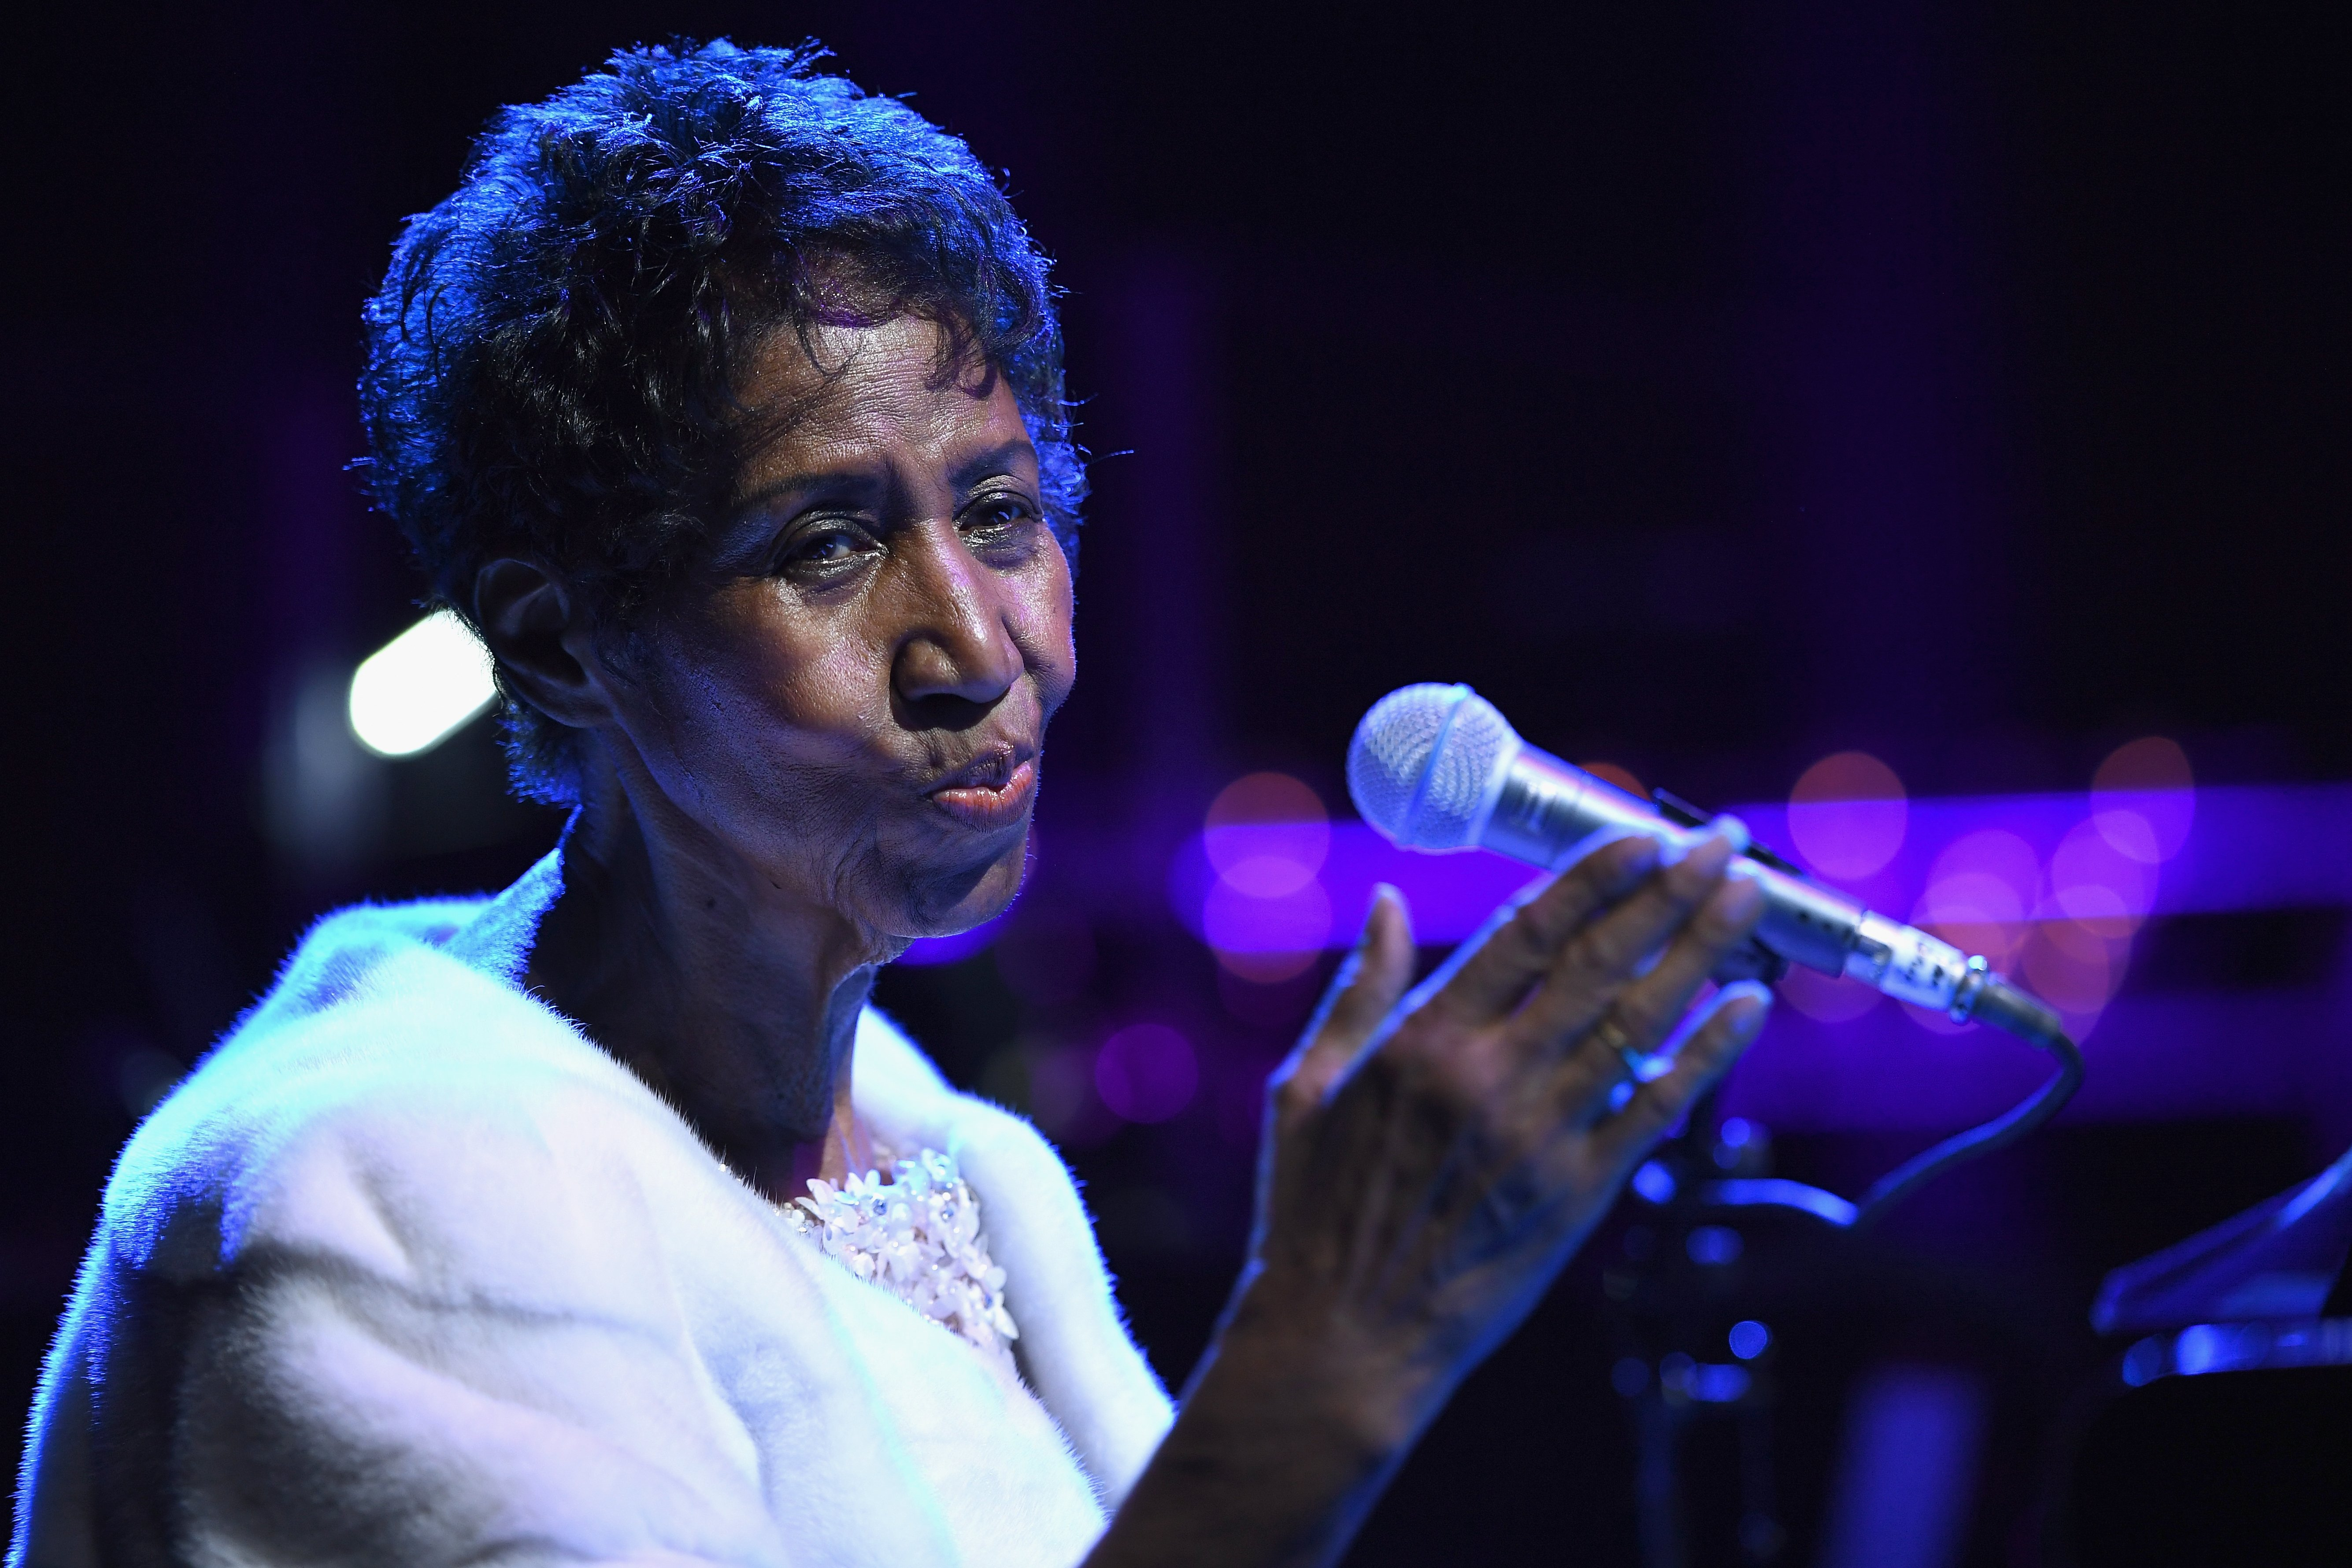 Aretha Franklin performing on stage at the Elton John AIDS Foundation's 25th year commemoration in New York on November 7, 2017. | Source: Getty Images